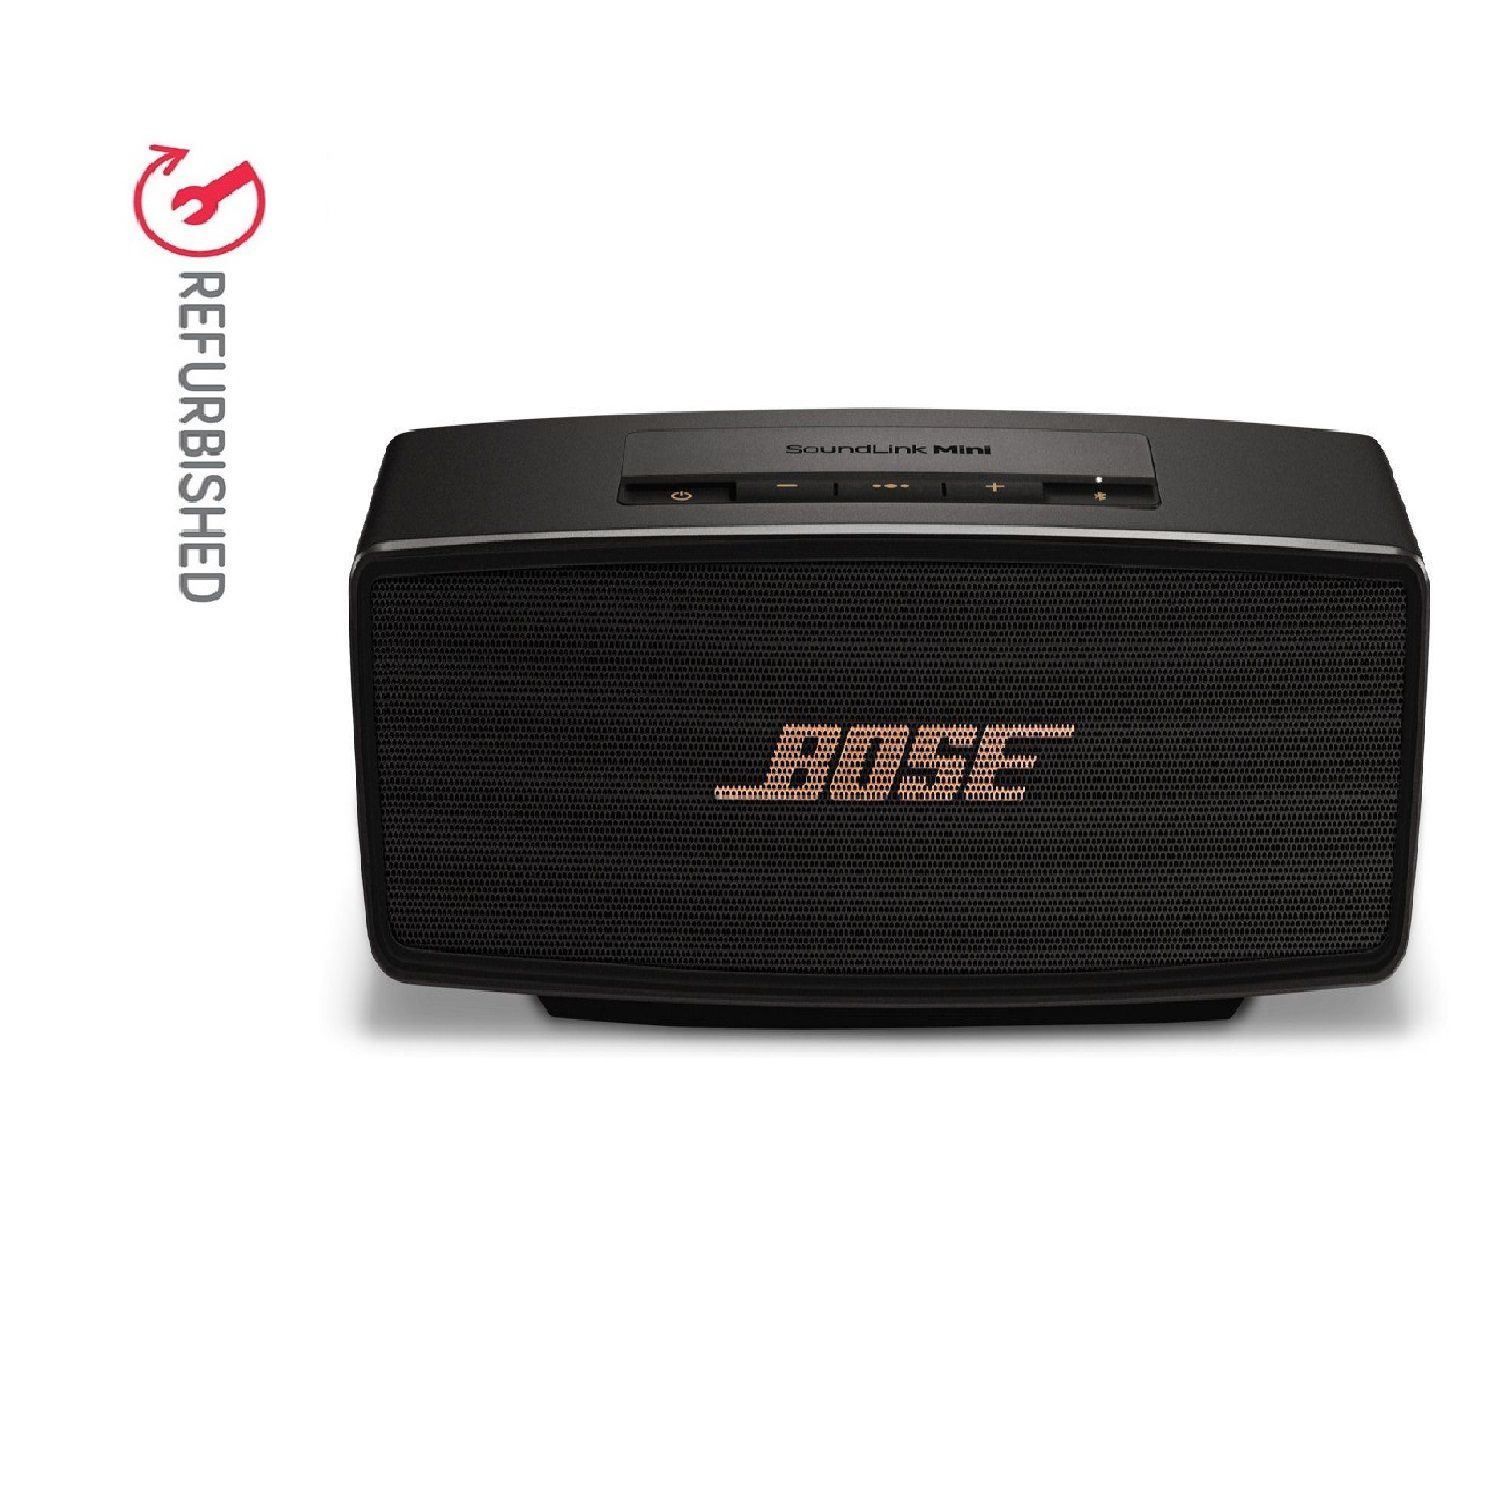 REFURBISHED Bose Soundlink MINI II color black Bluetooth Speaker 6 Months Seller Warranty